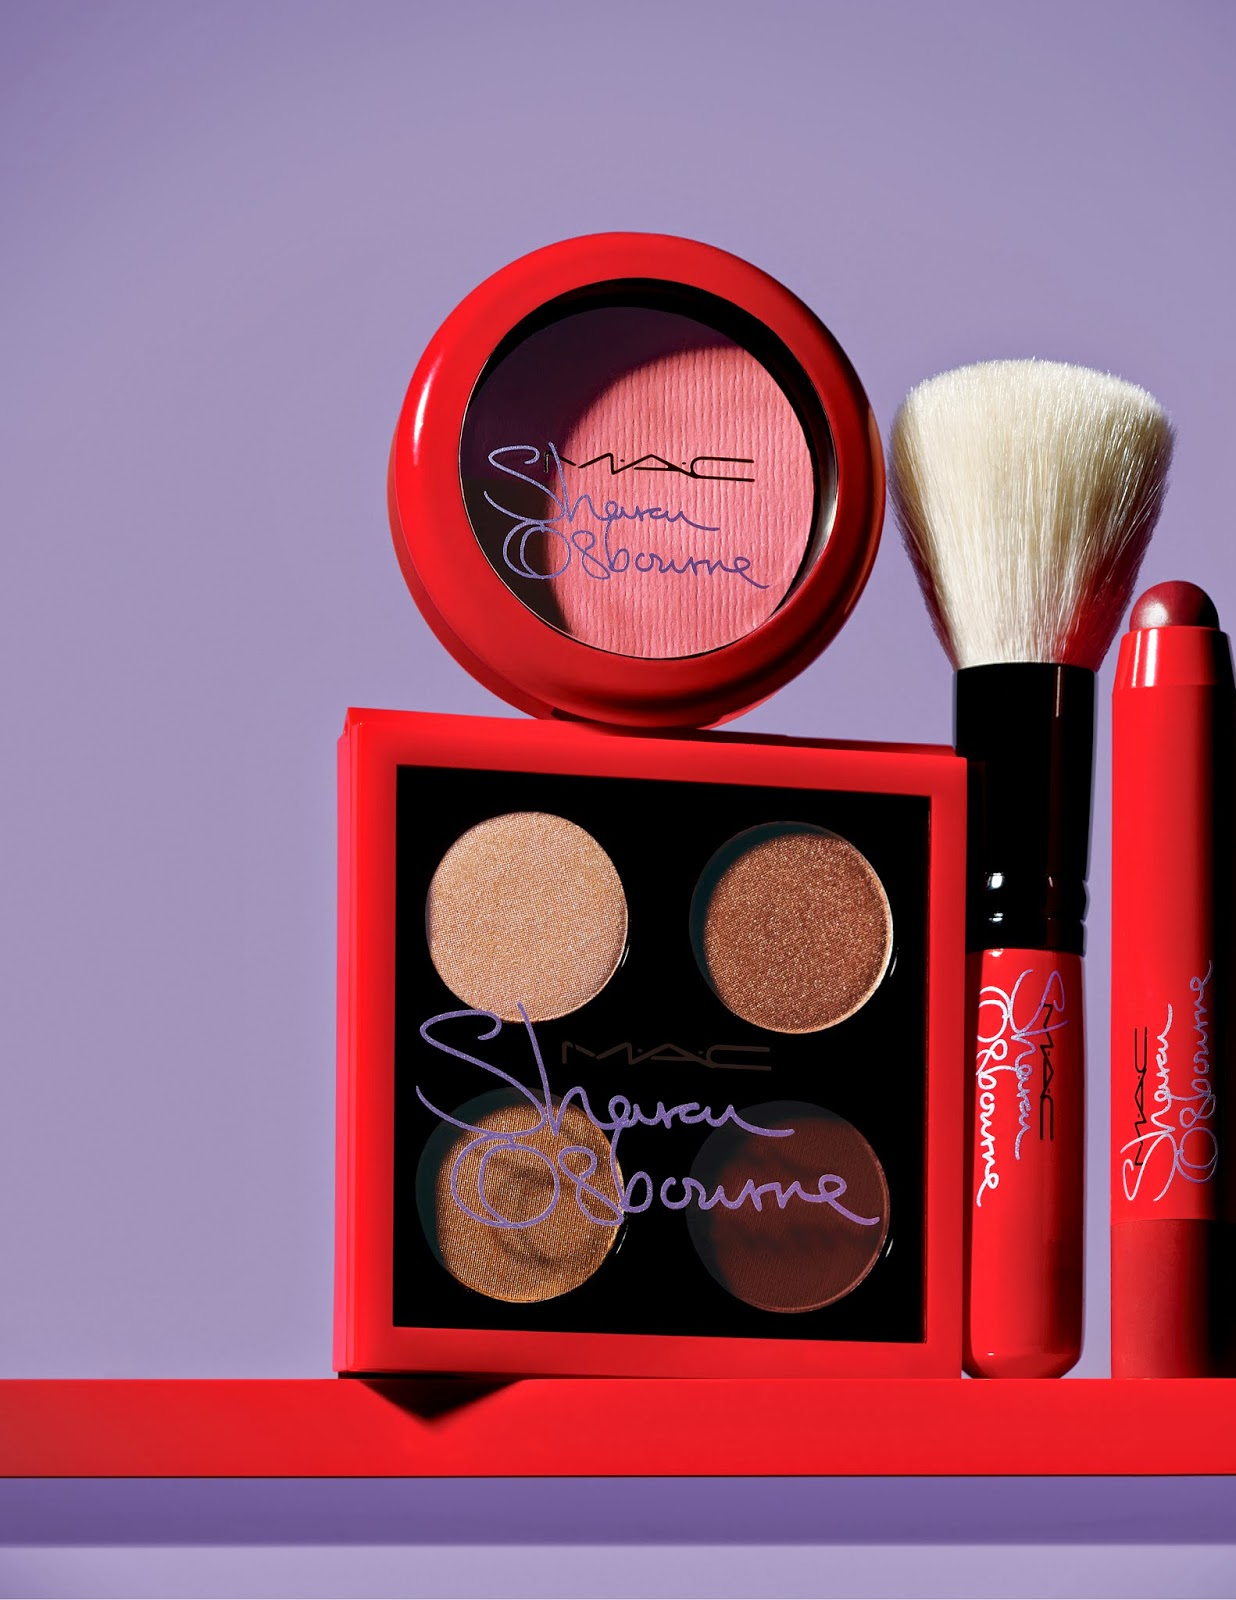 Sharon Osbourne's MAC collection